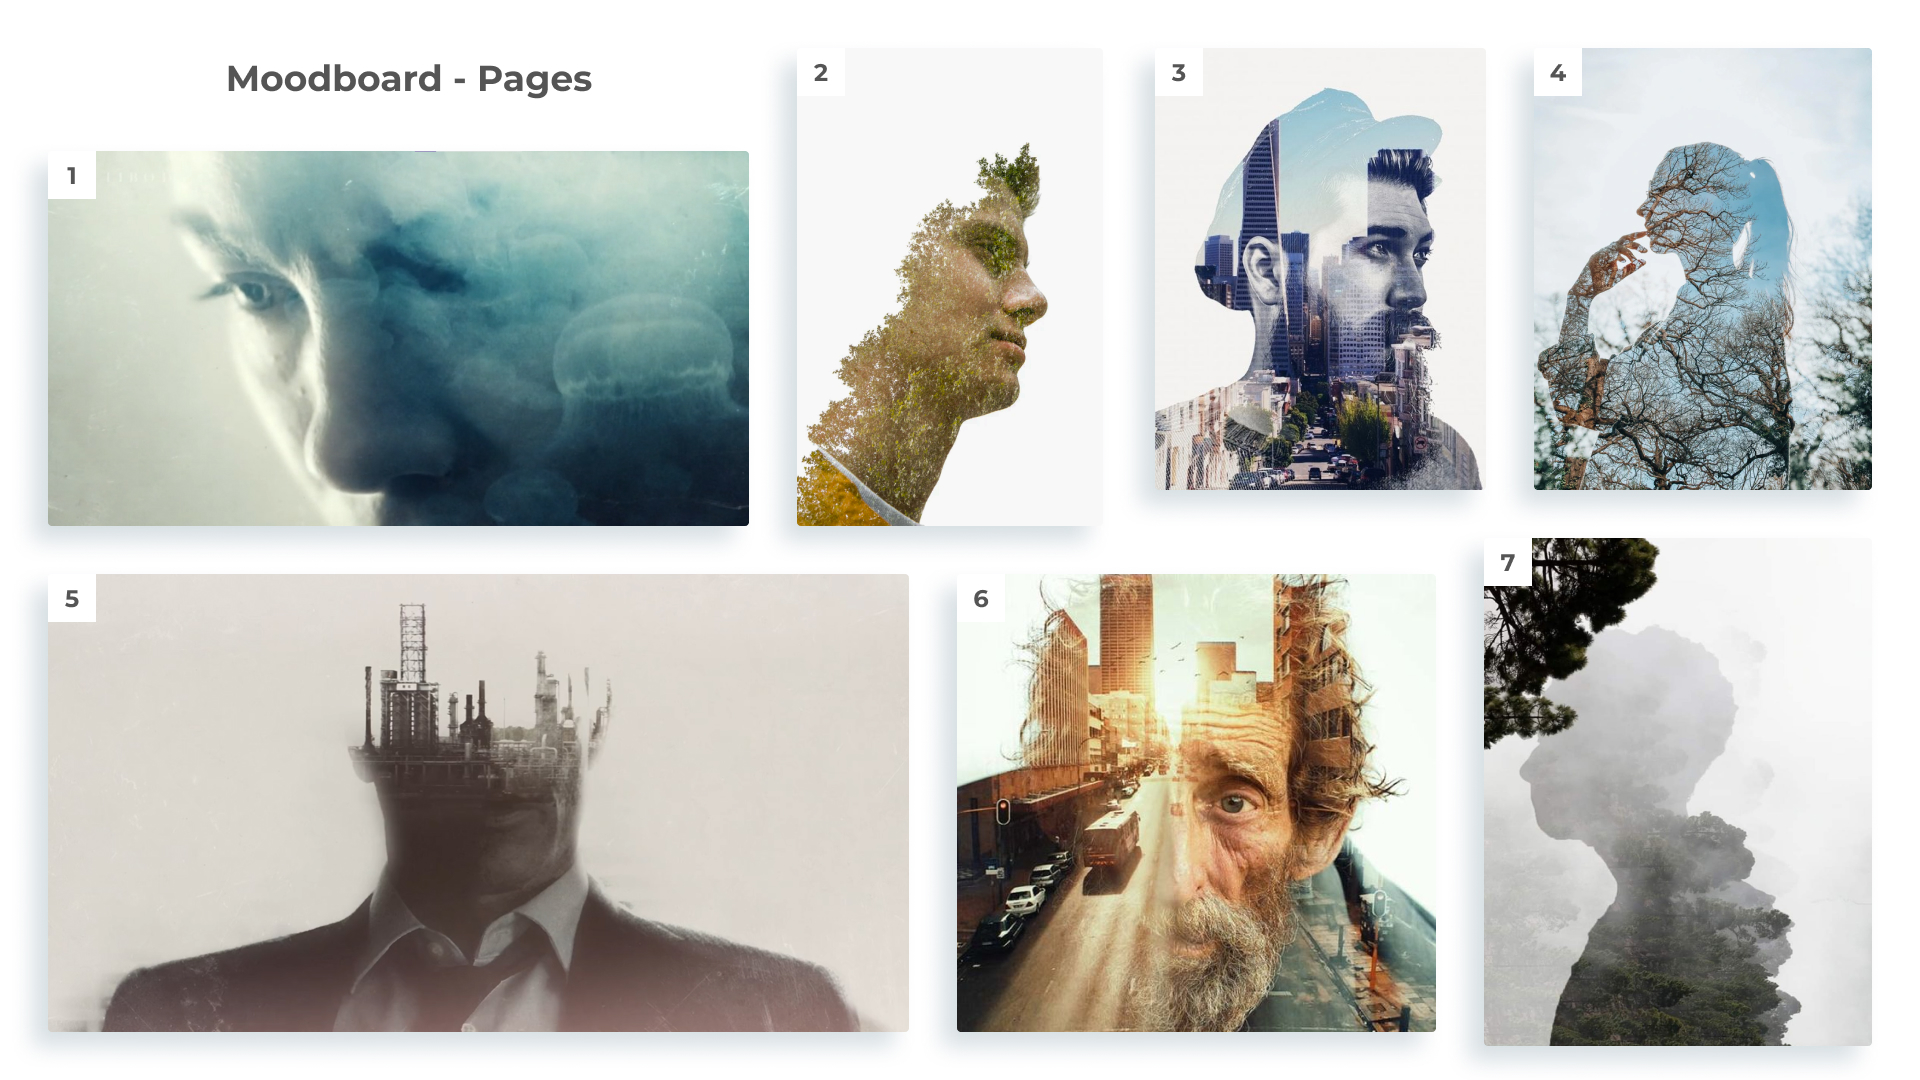 F1-Moodboard-pages